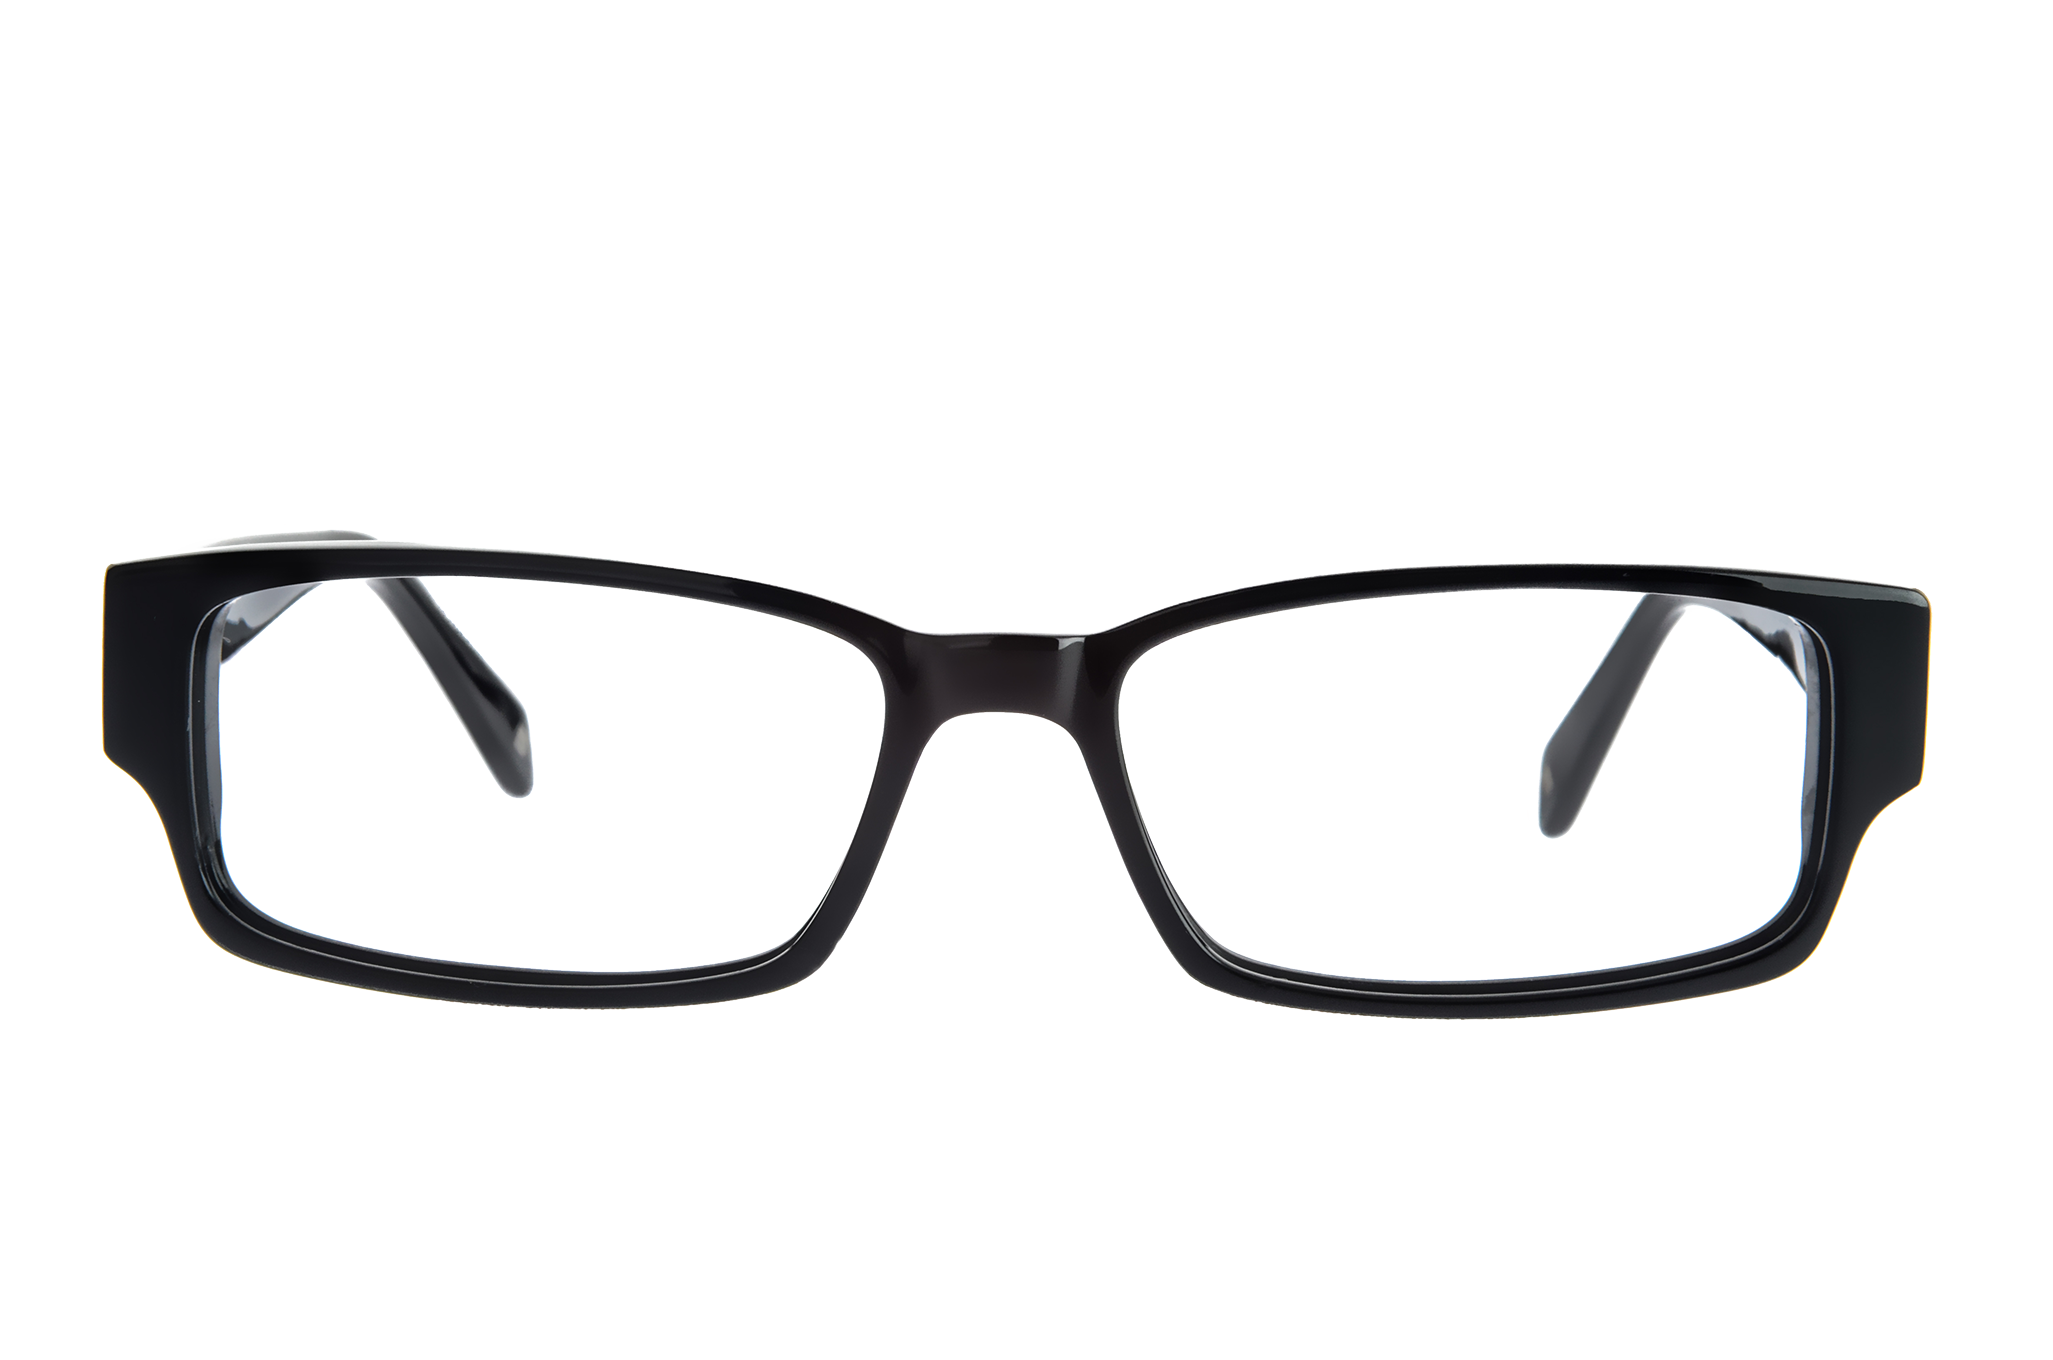 Glasses Png - ClipArt Best